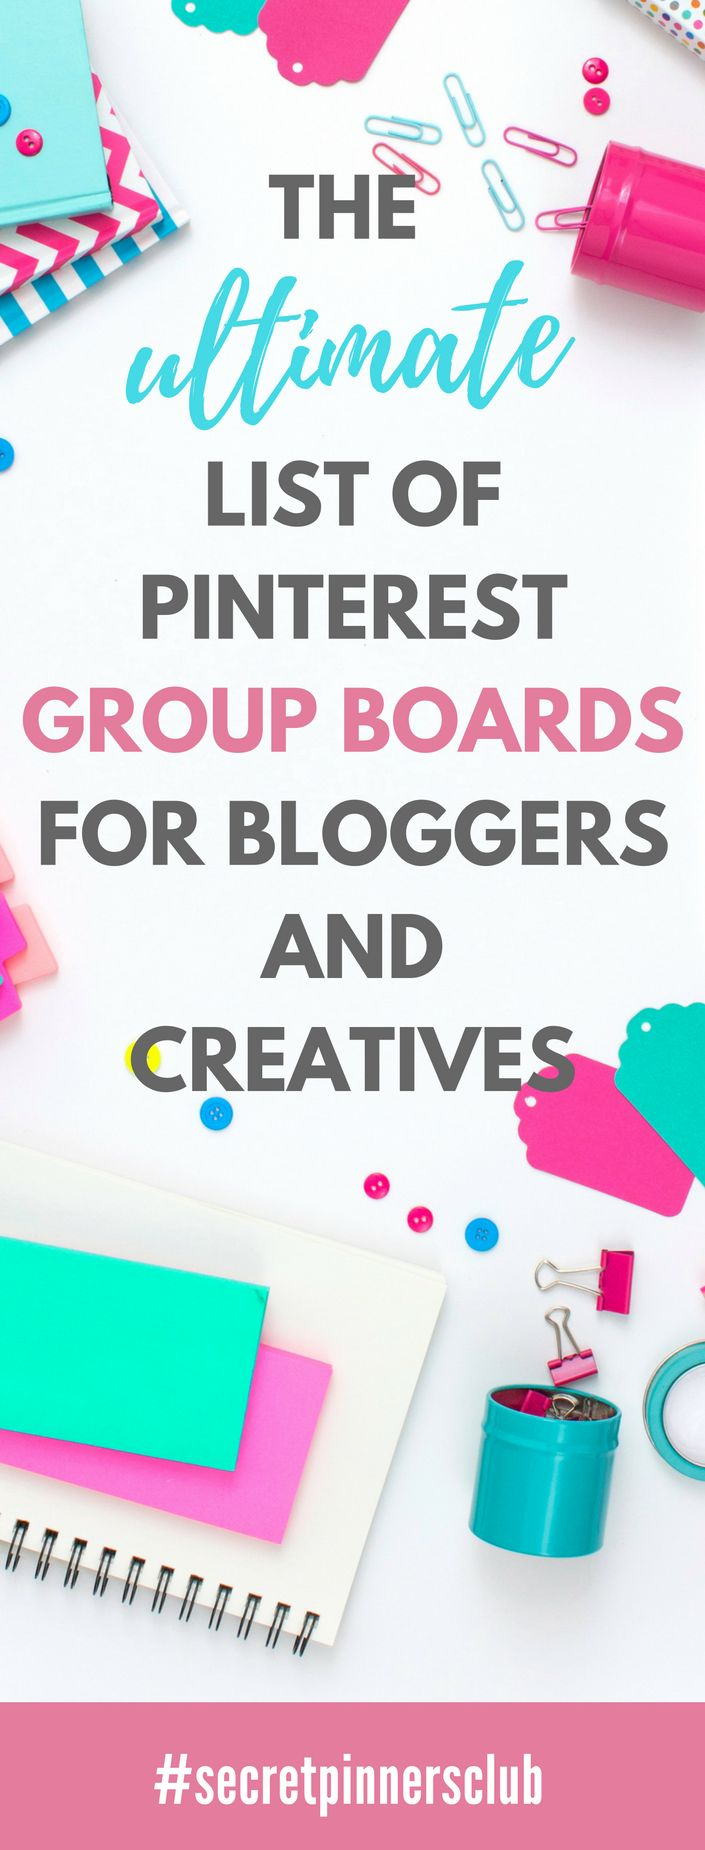 Click the link if you're a blogger or creative entrepreneur who's looking for Pinterest group boards to join. I list over 25 pinterest group boards...